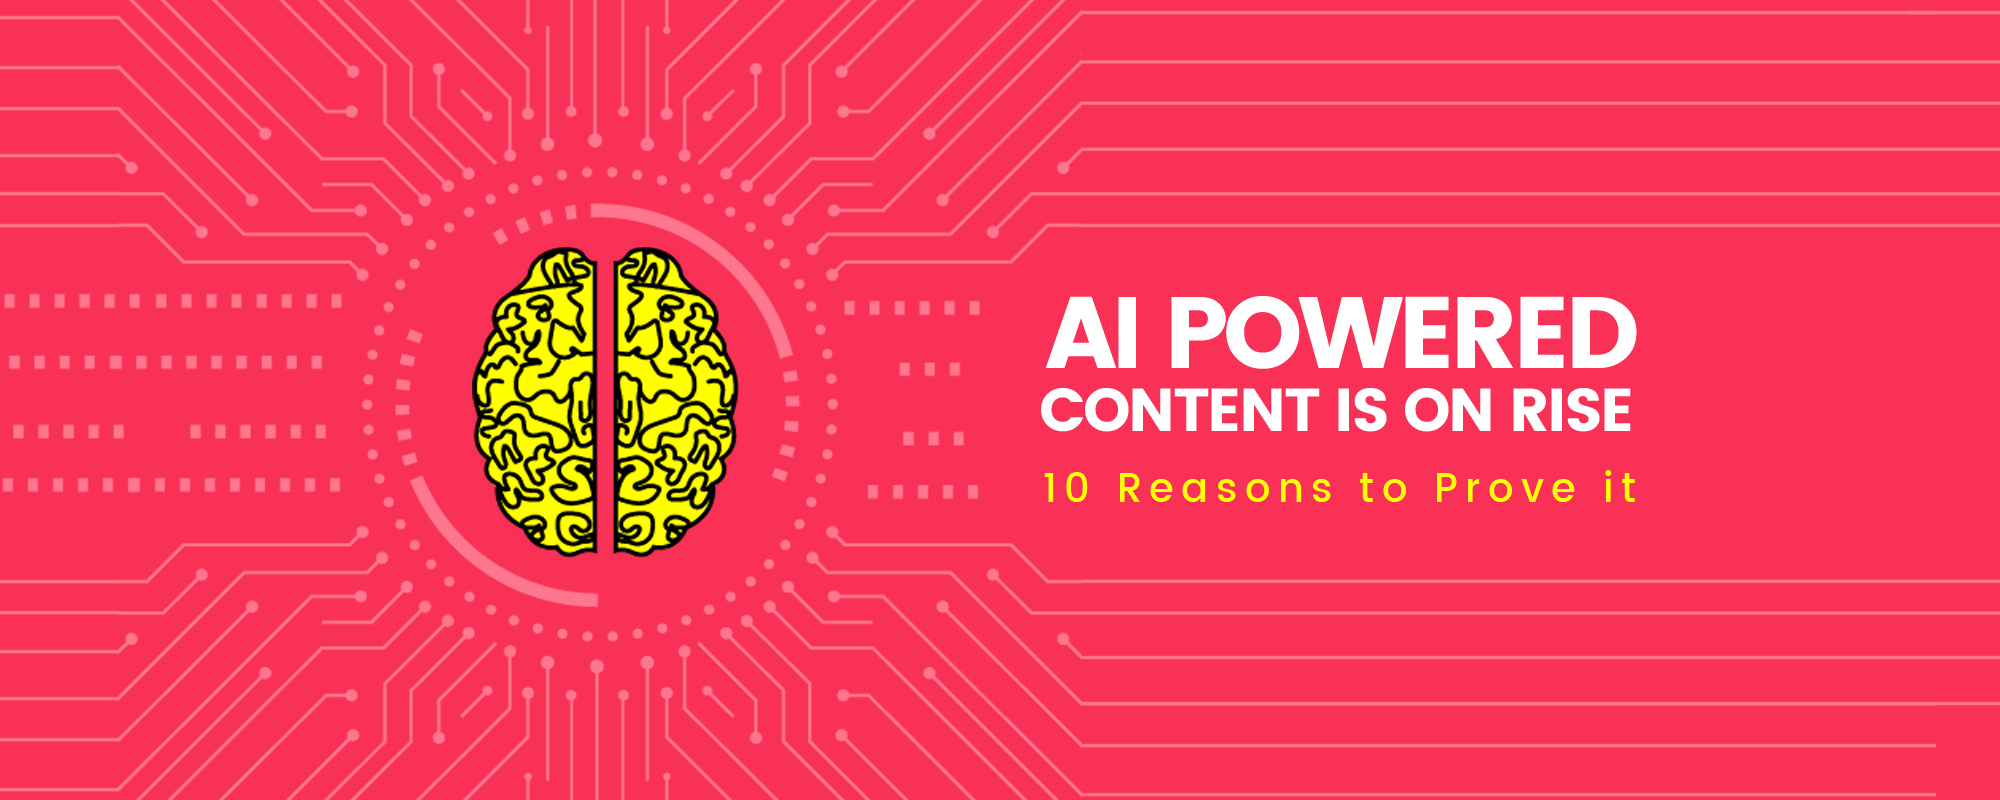 10 Reasons That Prove AI Powered Content Is on the Rise